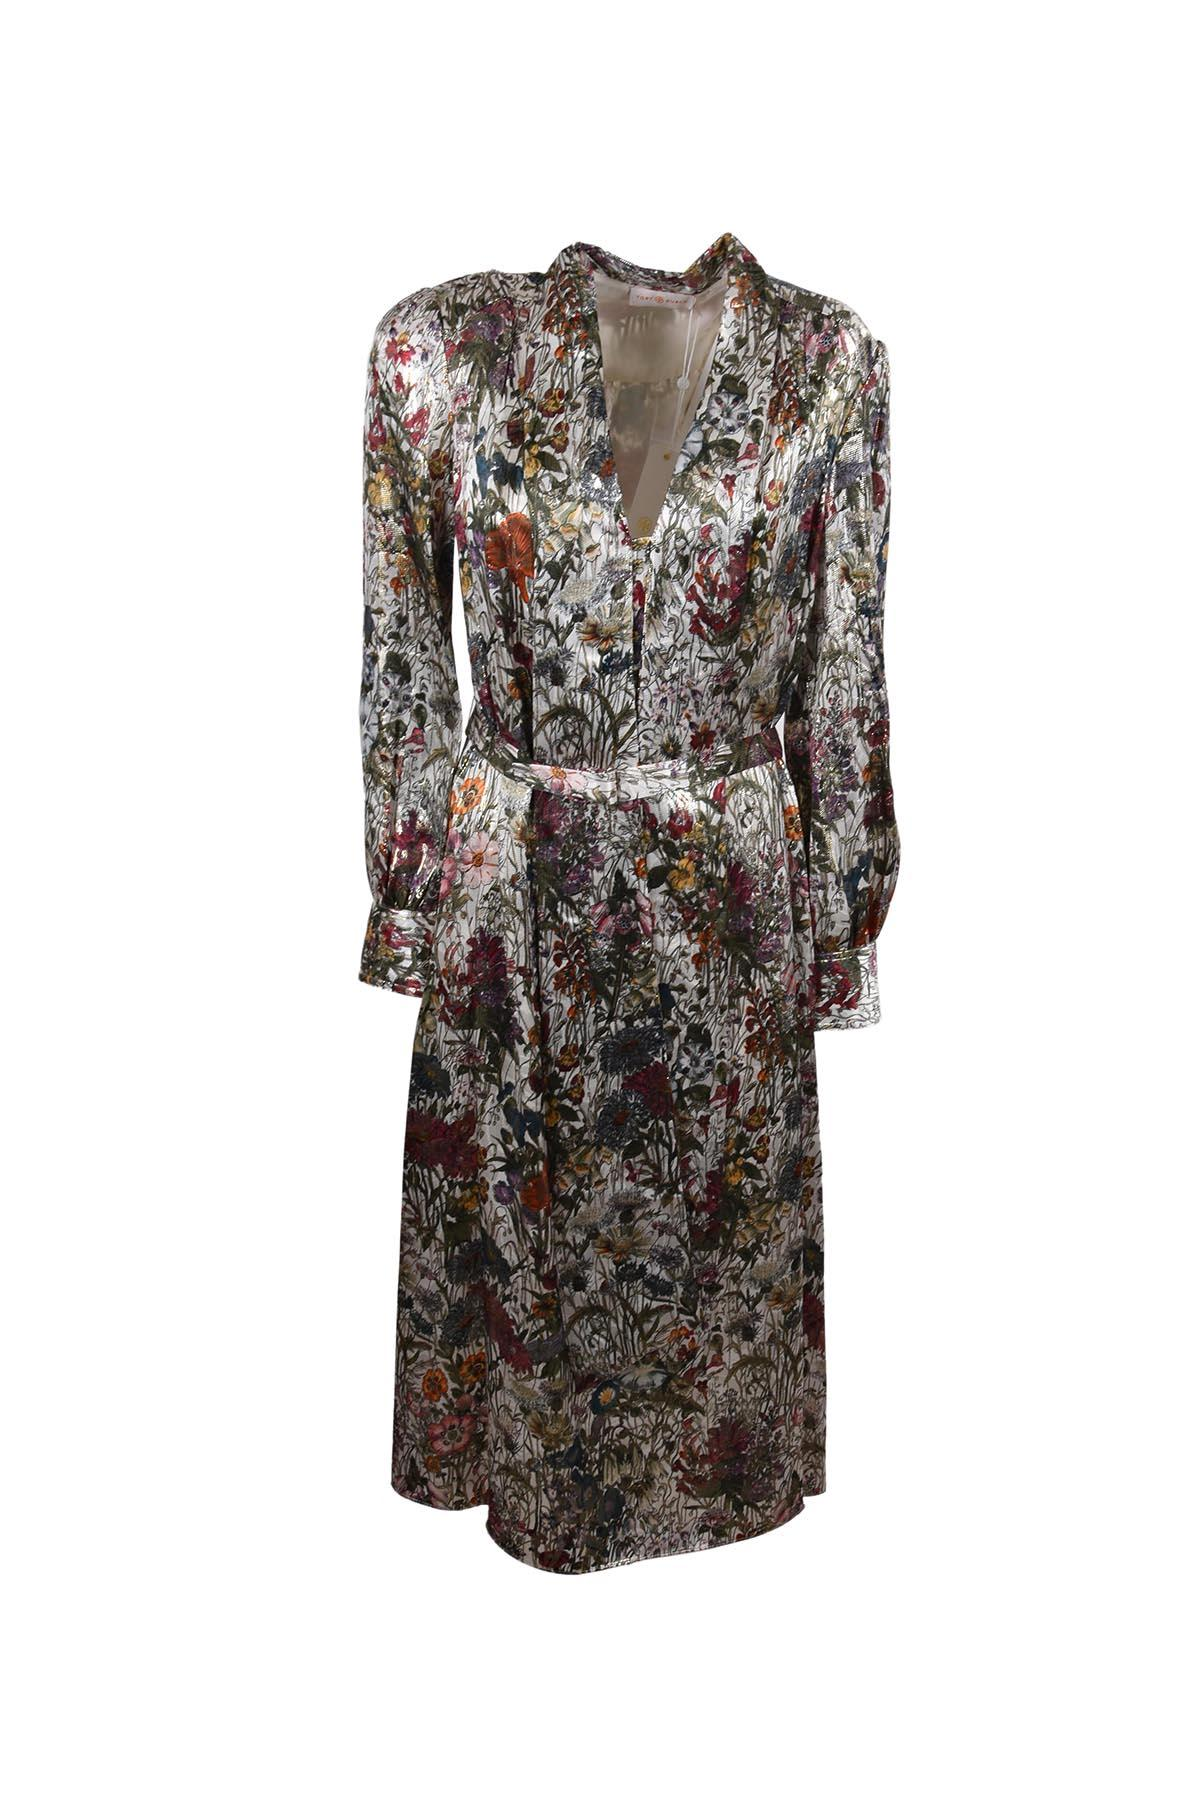 Tory Burch Full Length Jacket In Multicolour